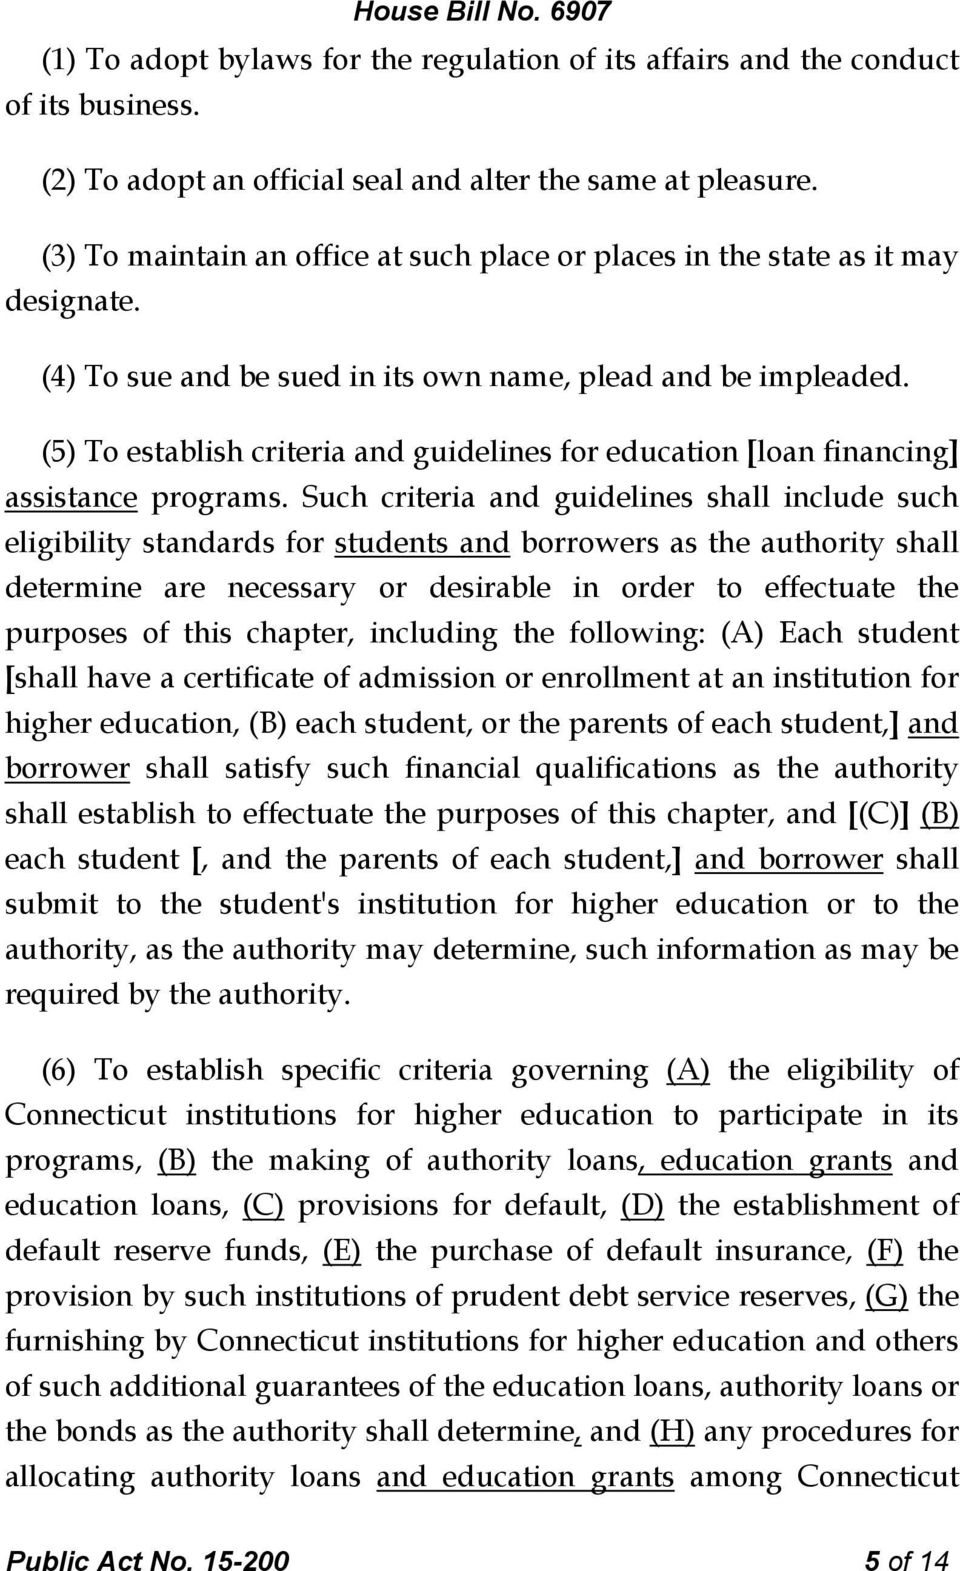 (5) To establish criteria and guidelines for education [loan financing] assistance programs.